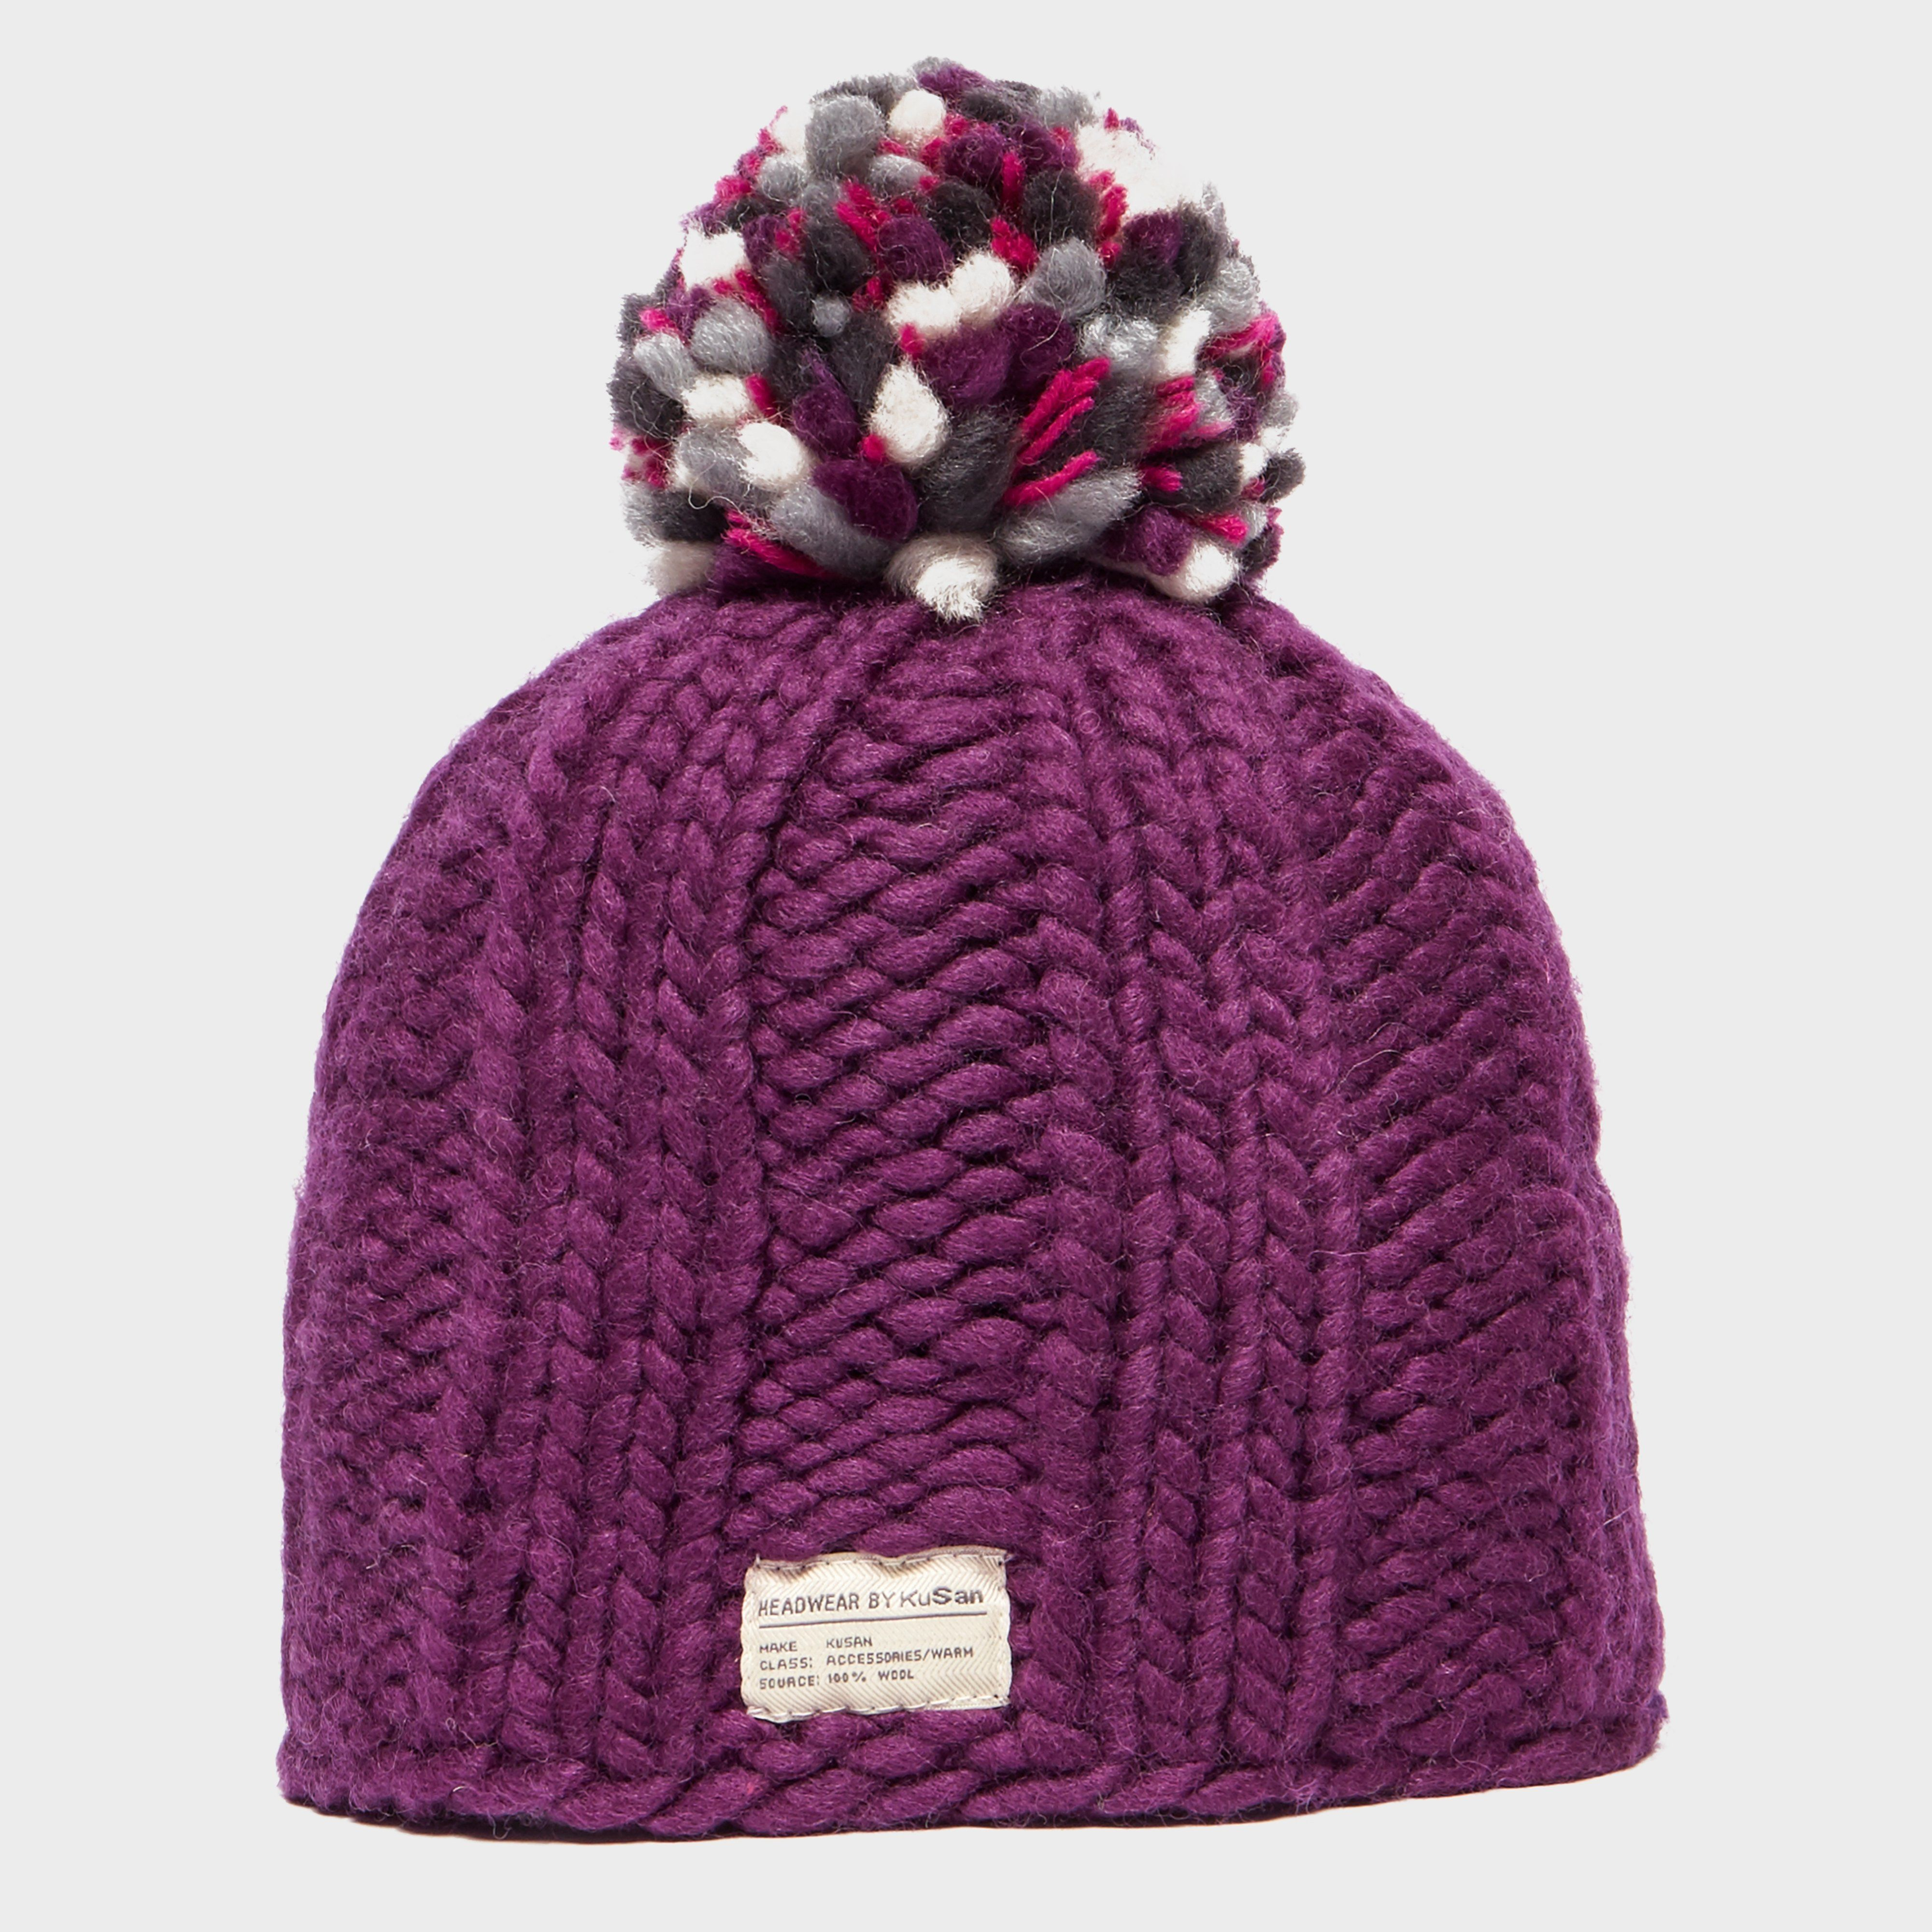 KUSAN Women's Beauty Bobble Hat